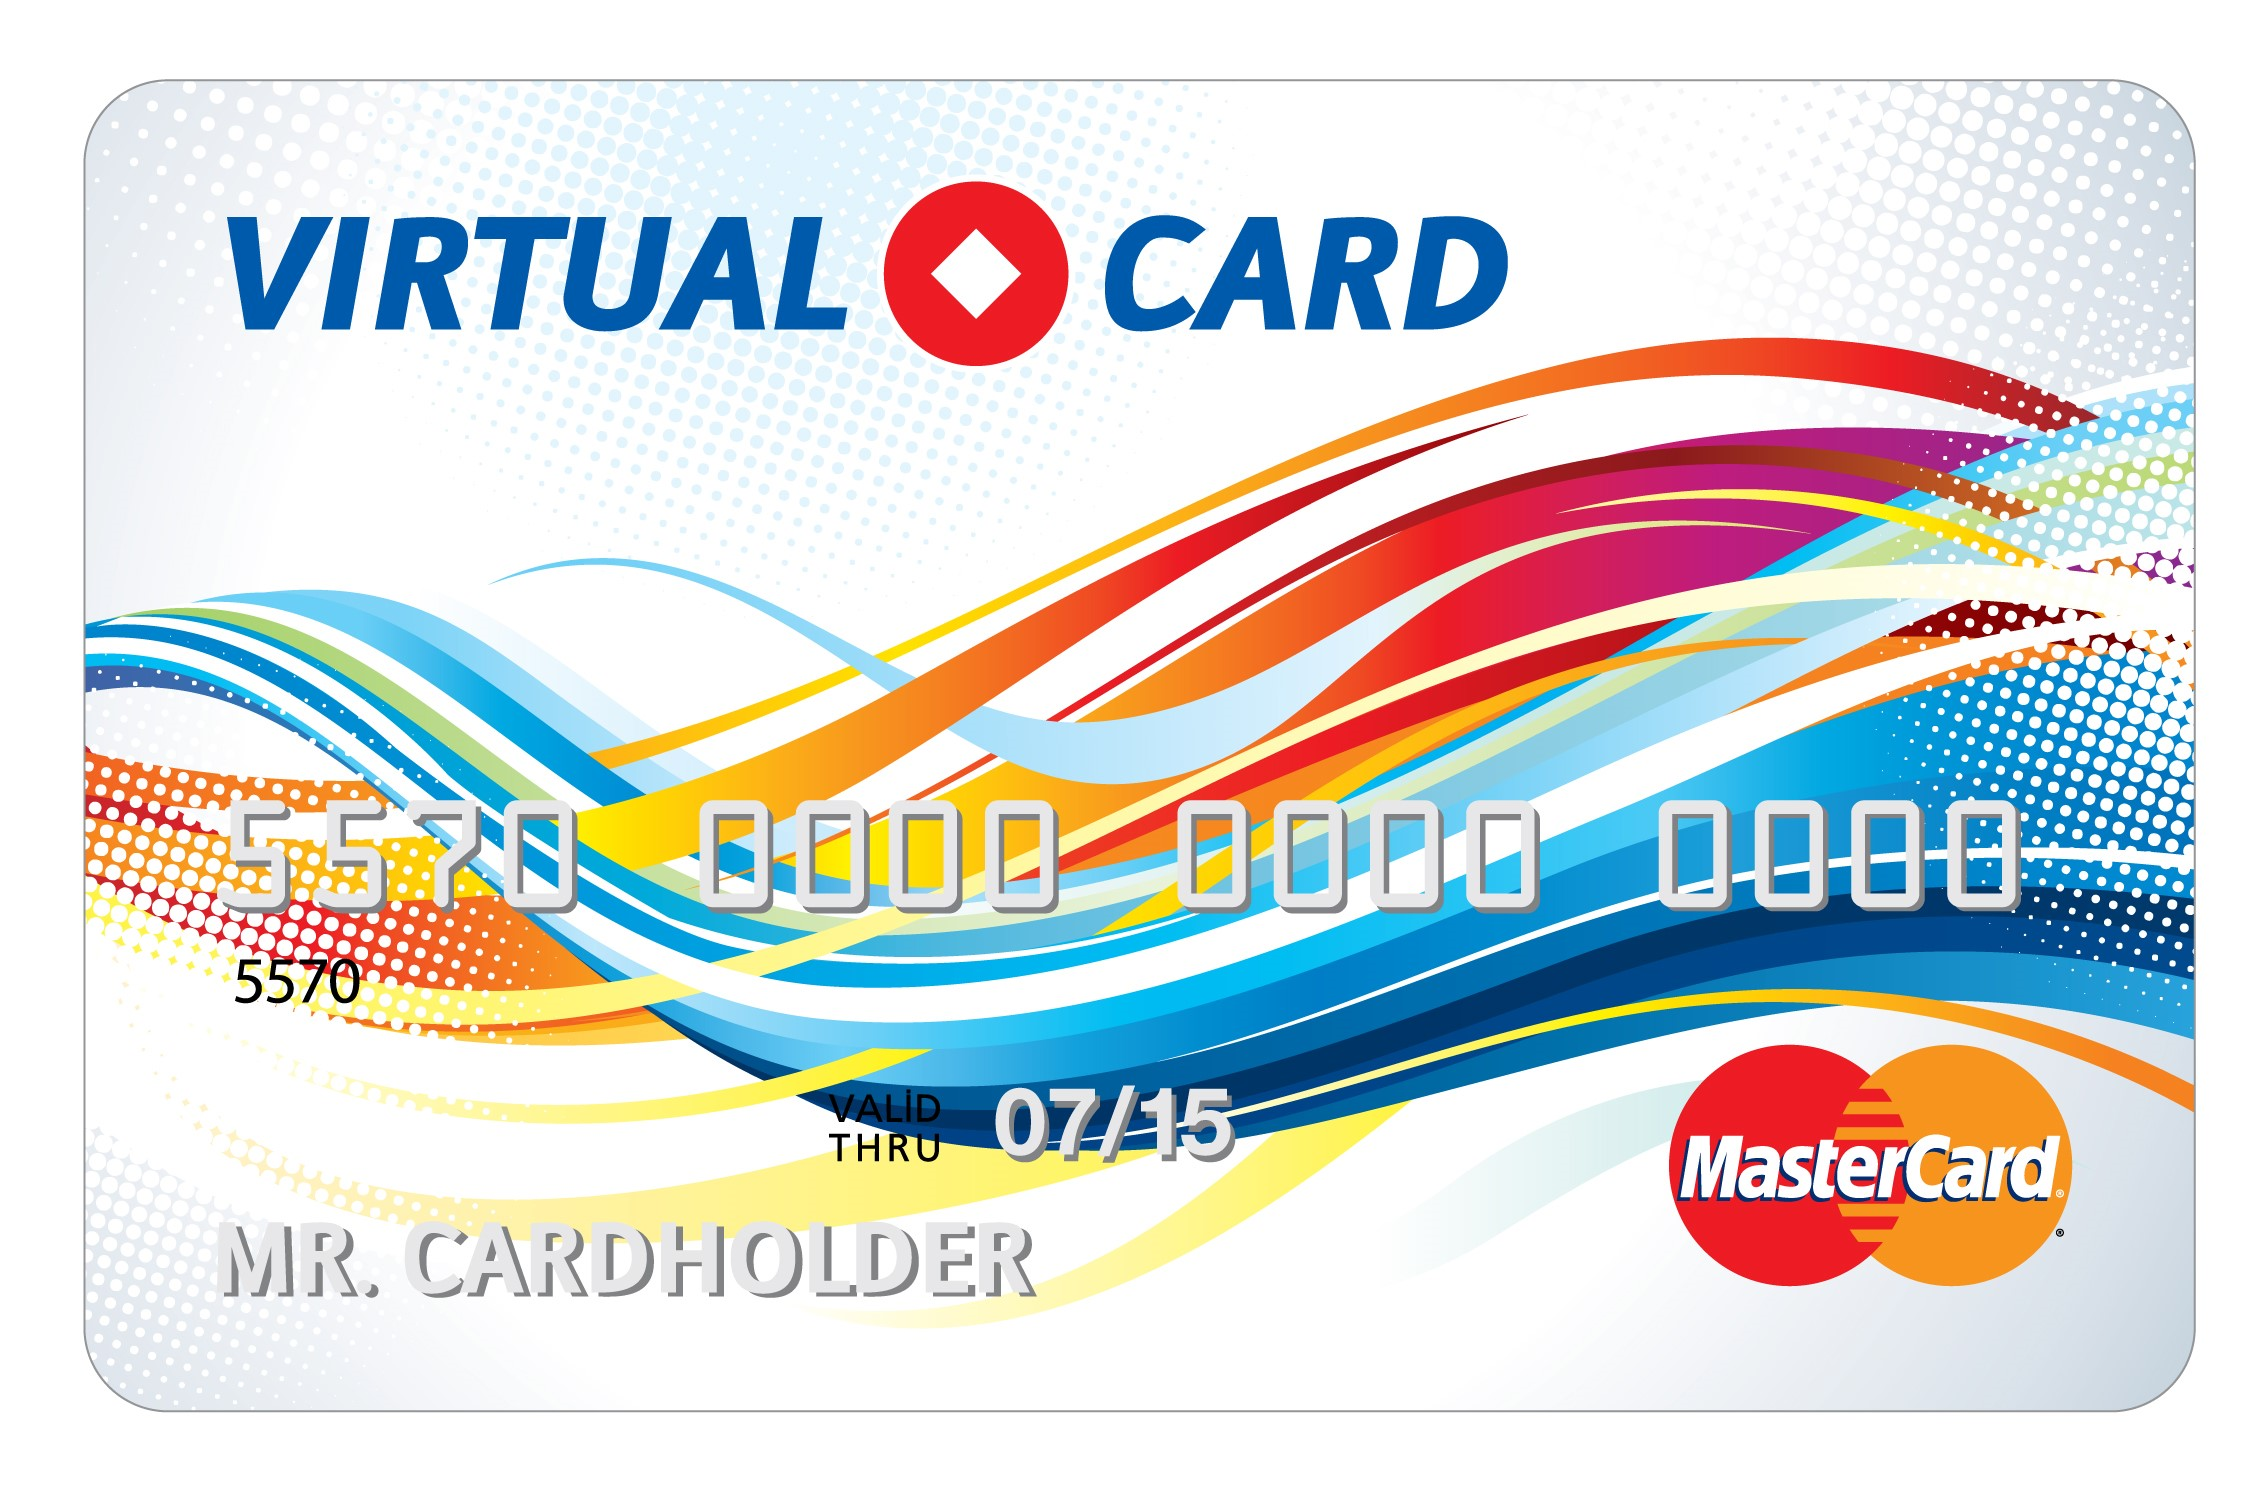 700 rub MASTERCARD VIRTUAL (RUS Bank) Guarantee